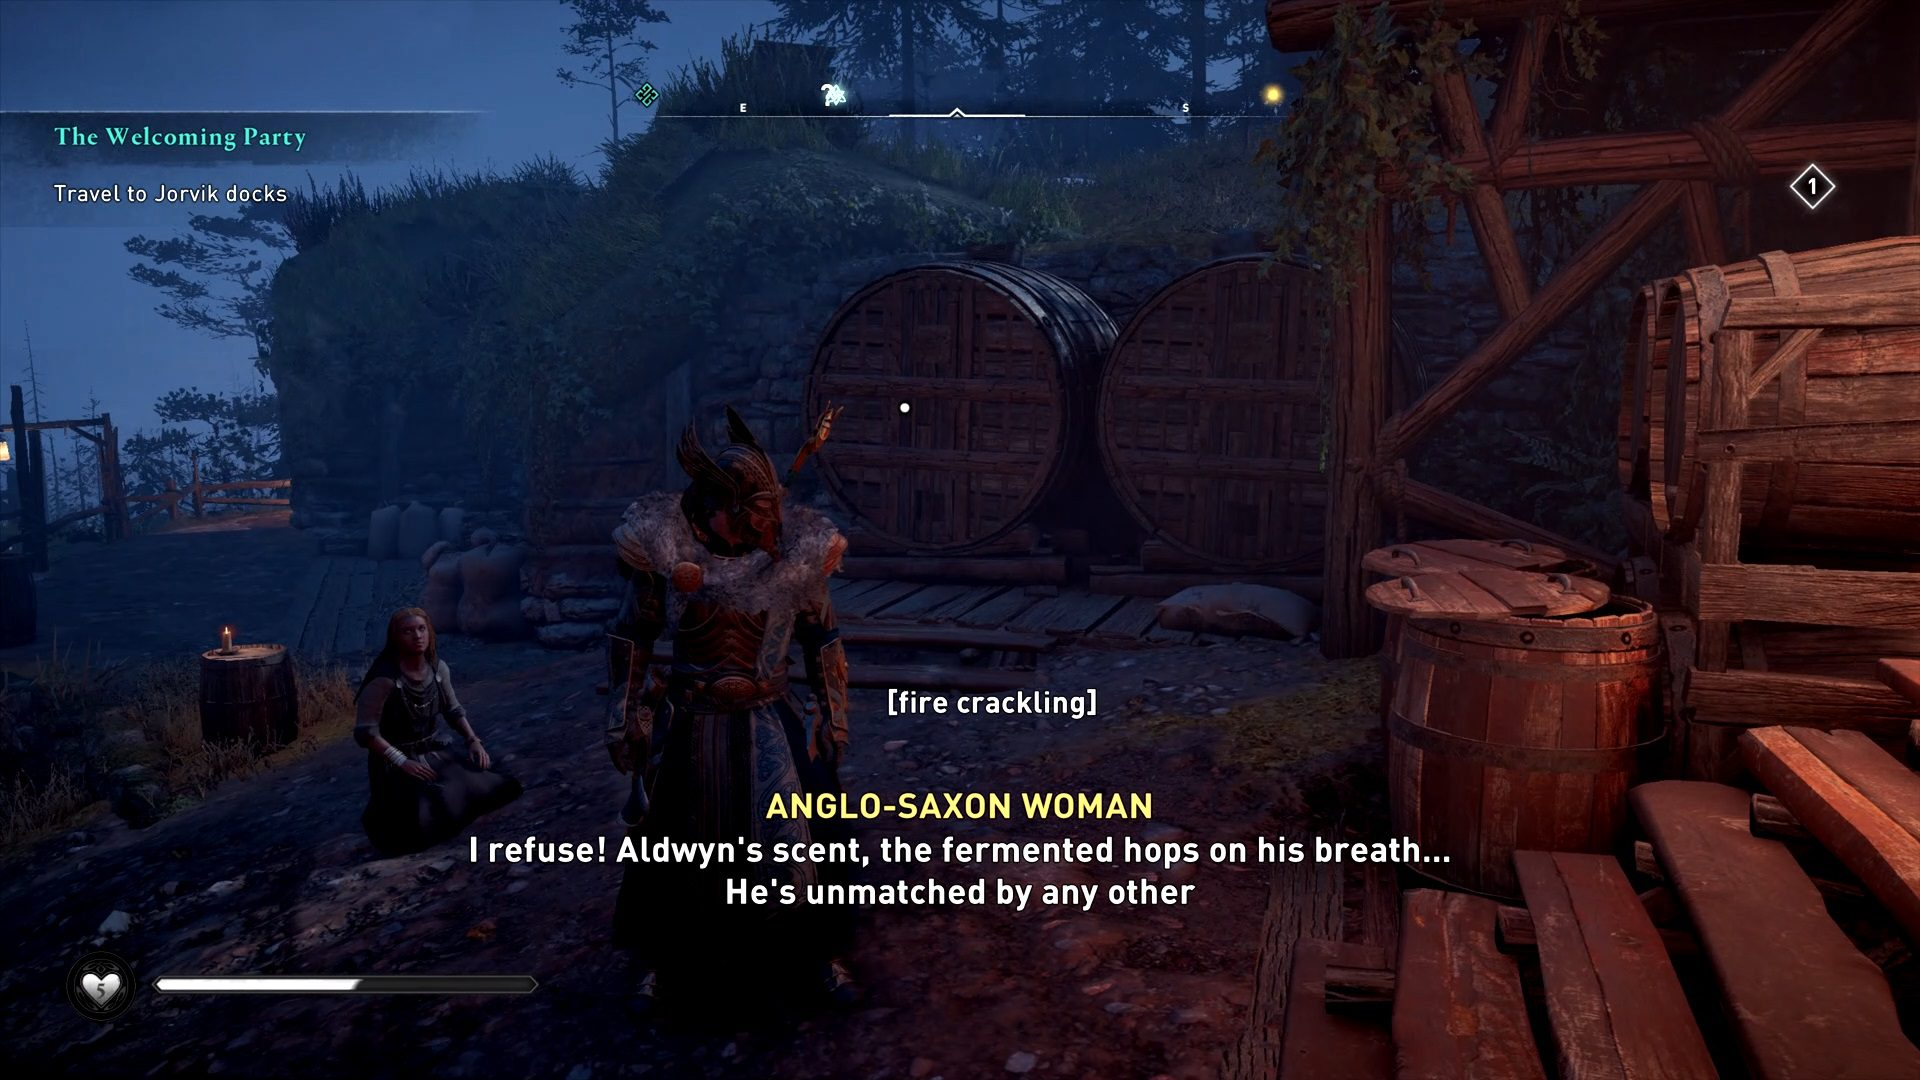 Assassin's Creed Valhalla Aldwin Anglo Saxon Woman Muse